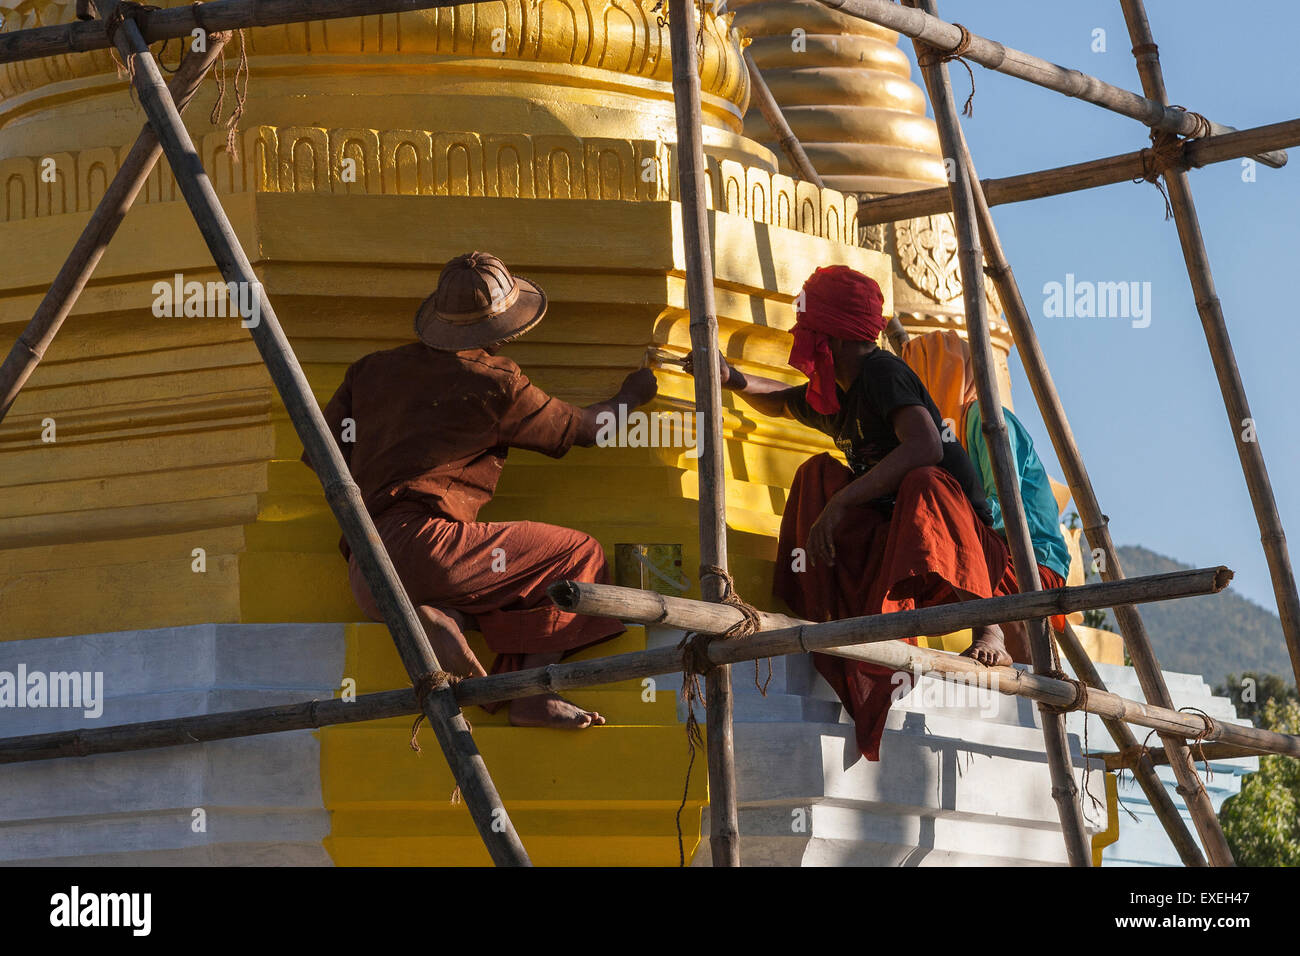 Local men doing repair work, Hsu Taung Pye Pagodas, Kalaw, Shan State, Myanmar - Stock Image